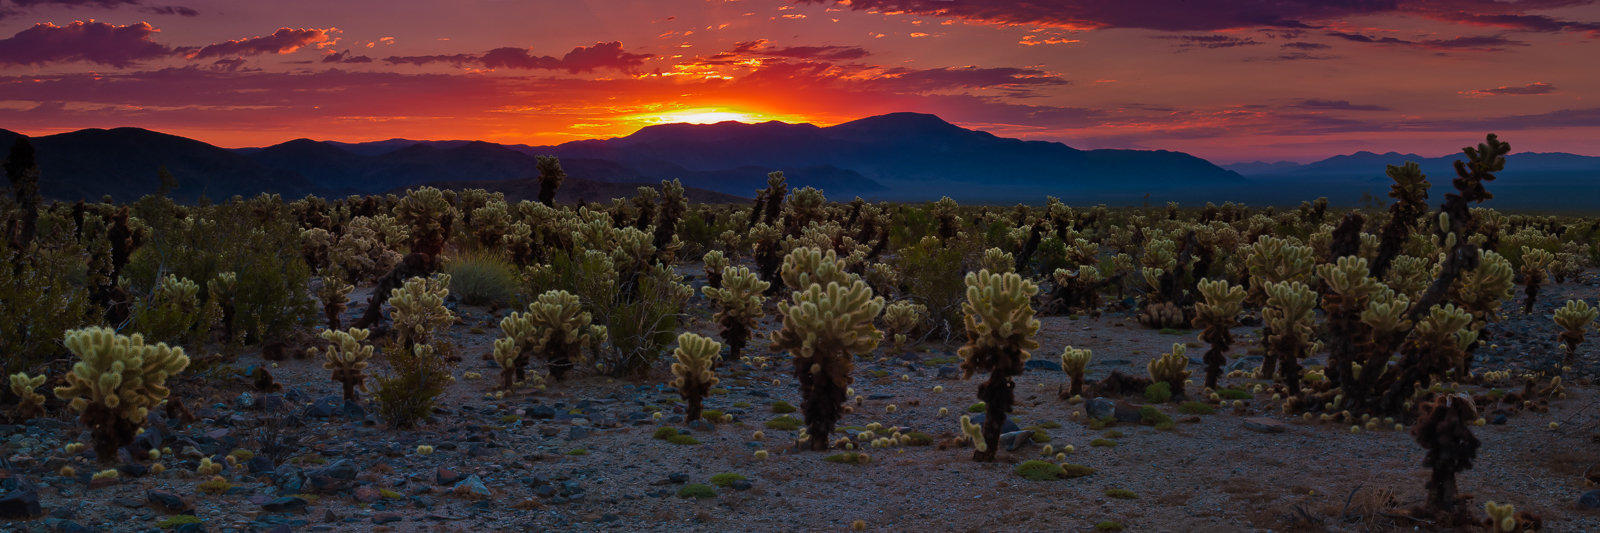 Cholla Cacti Field,California,Desert,Joshua Tree National Park,Panoramic,Sunrise,horizontal,desert,cactus greet, photo